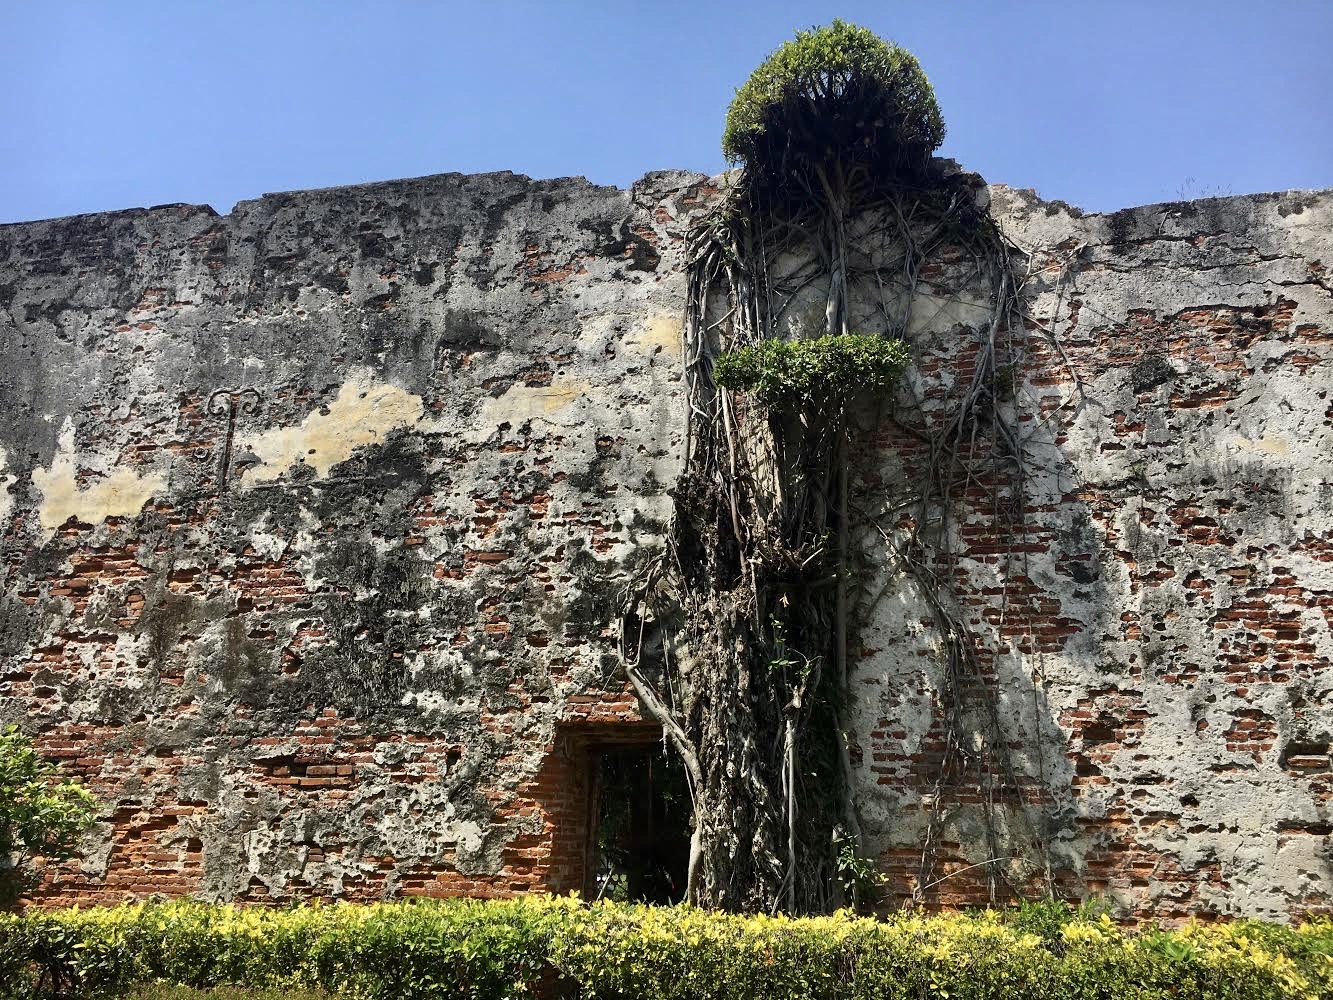 Remnants of the old Anping Fort stands testament to Tainan's history and culture